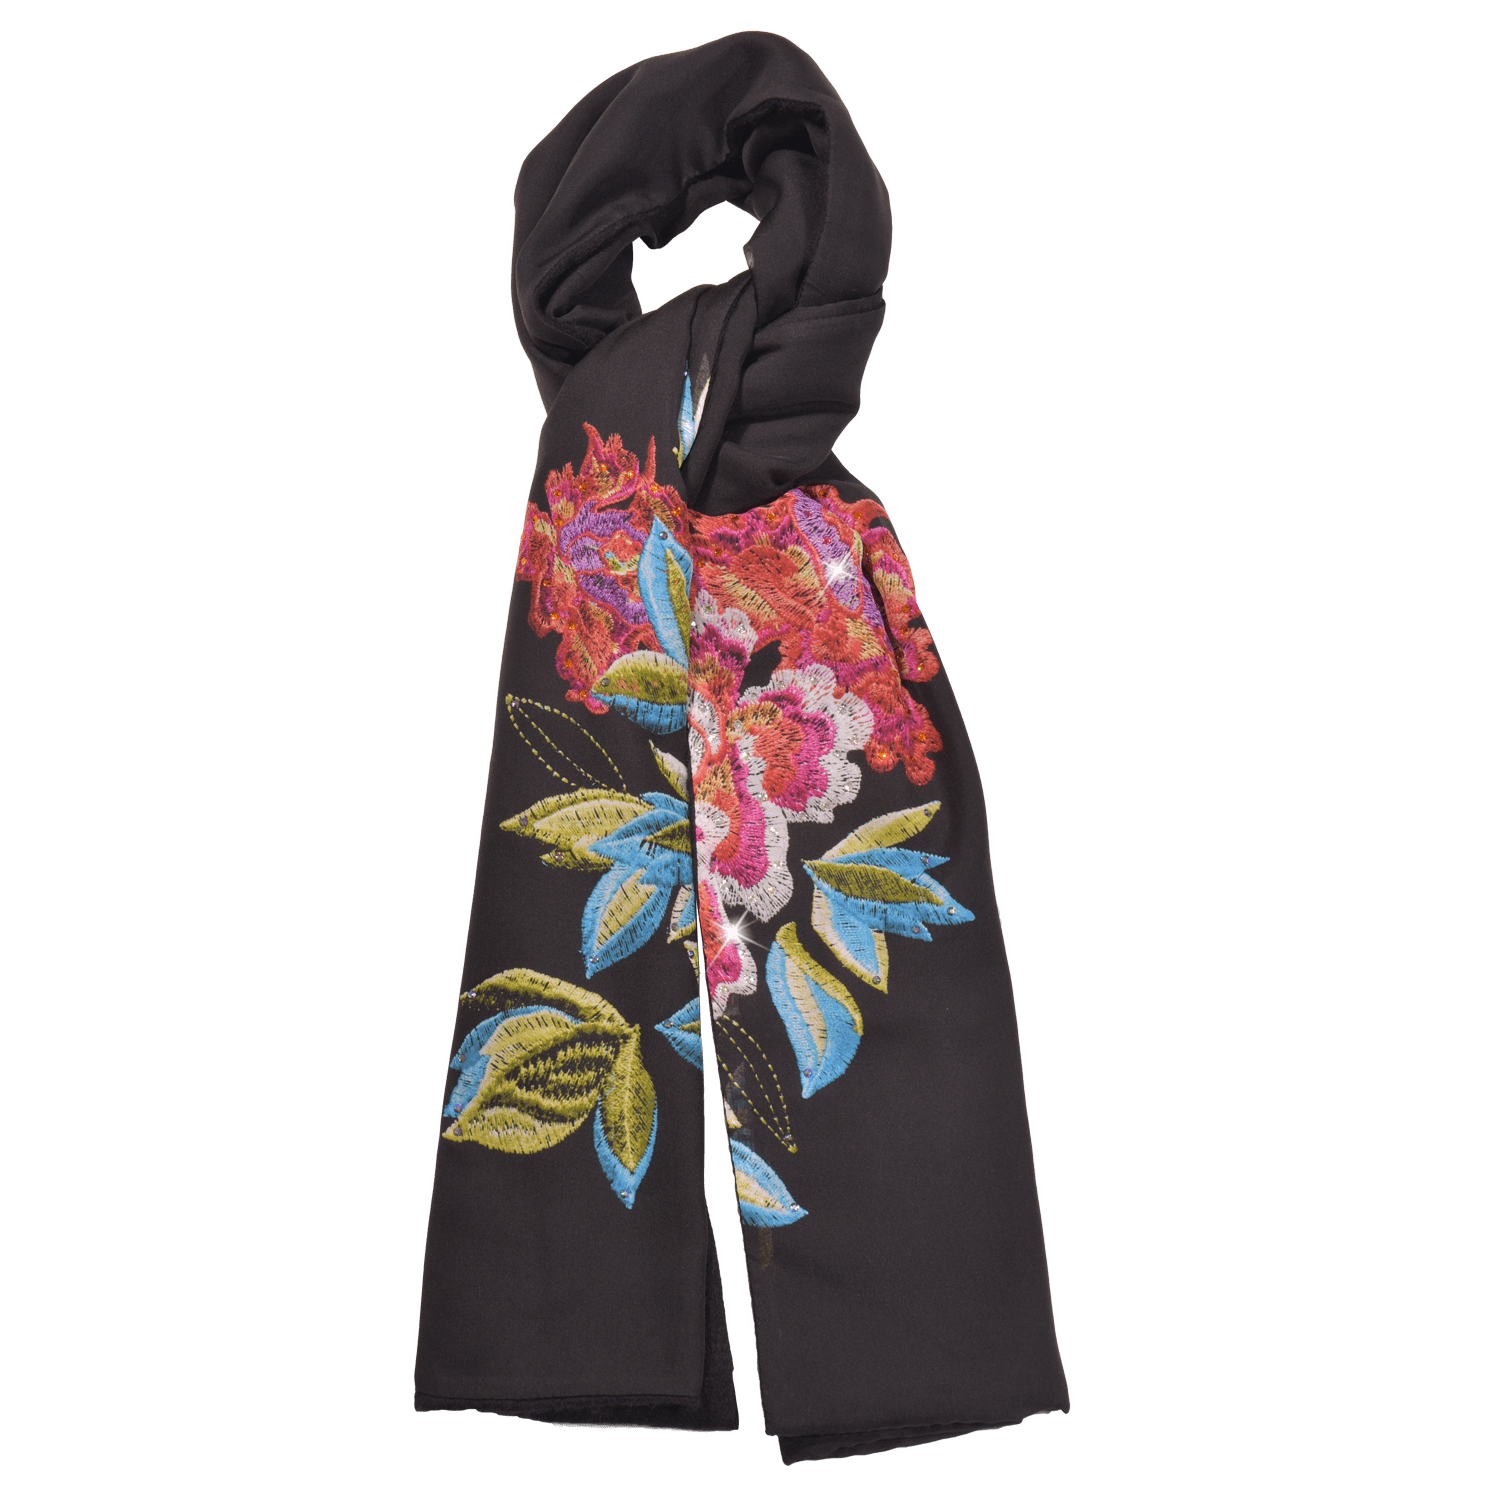 【PEONY】100% Cashmere and 100% Silk Scarf with Crystals - THE SPARKLE COLLECTION by GERMAN POOL